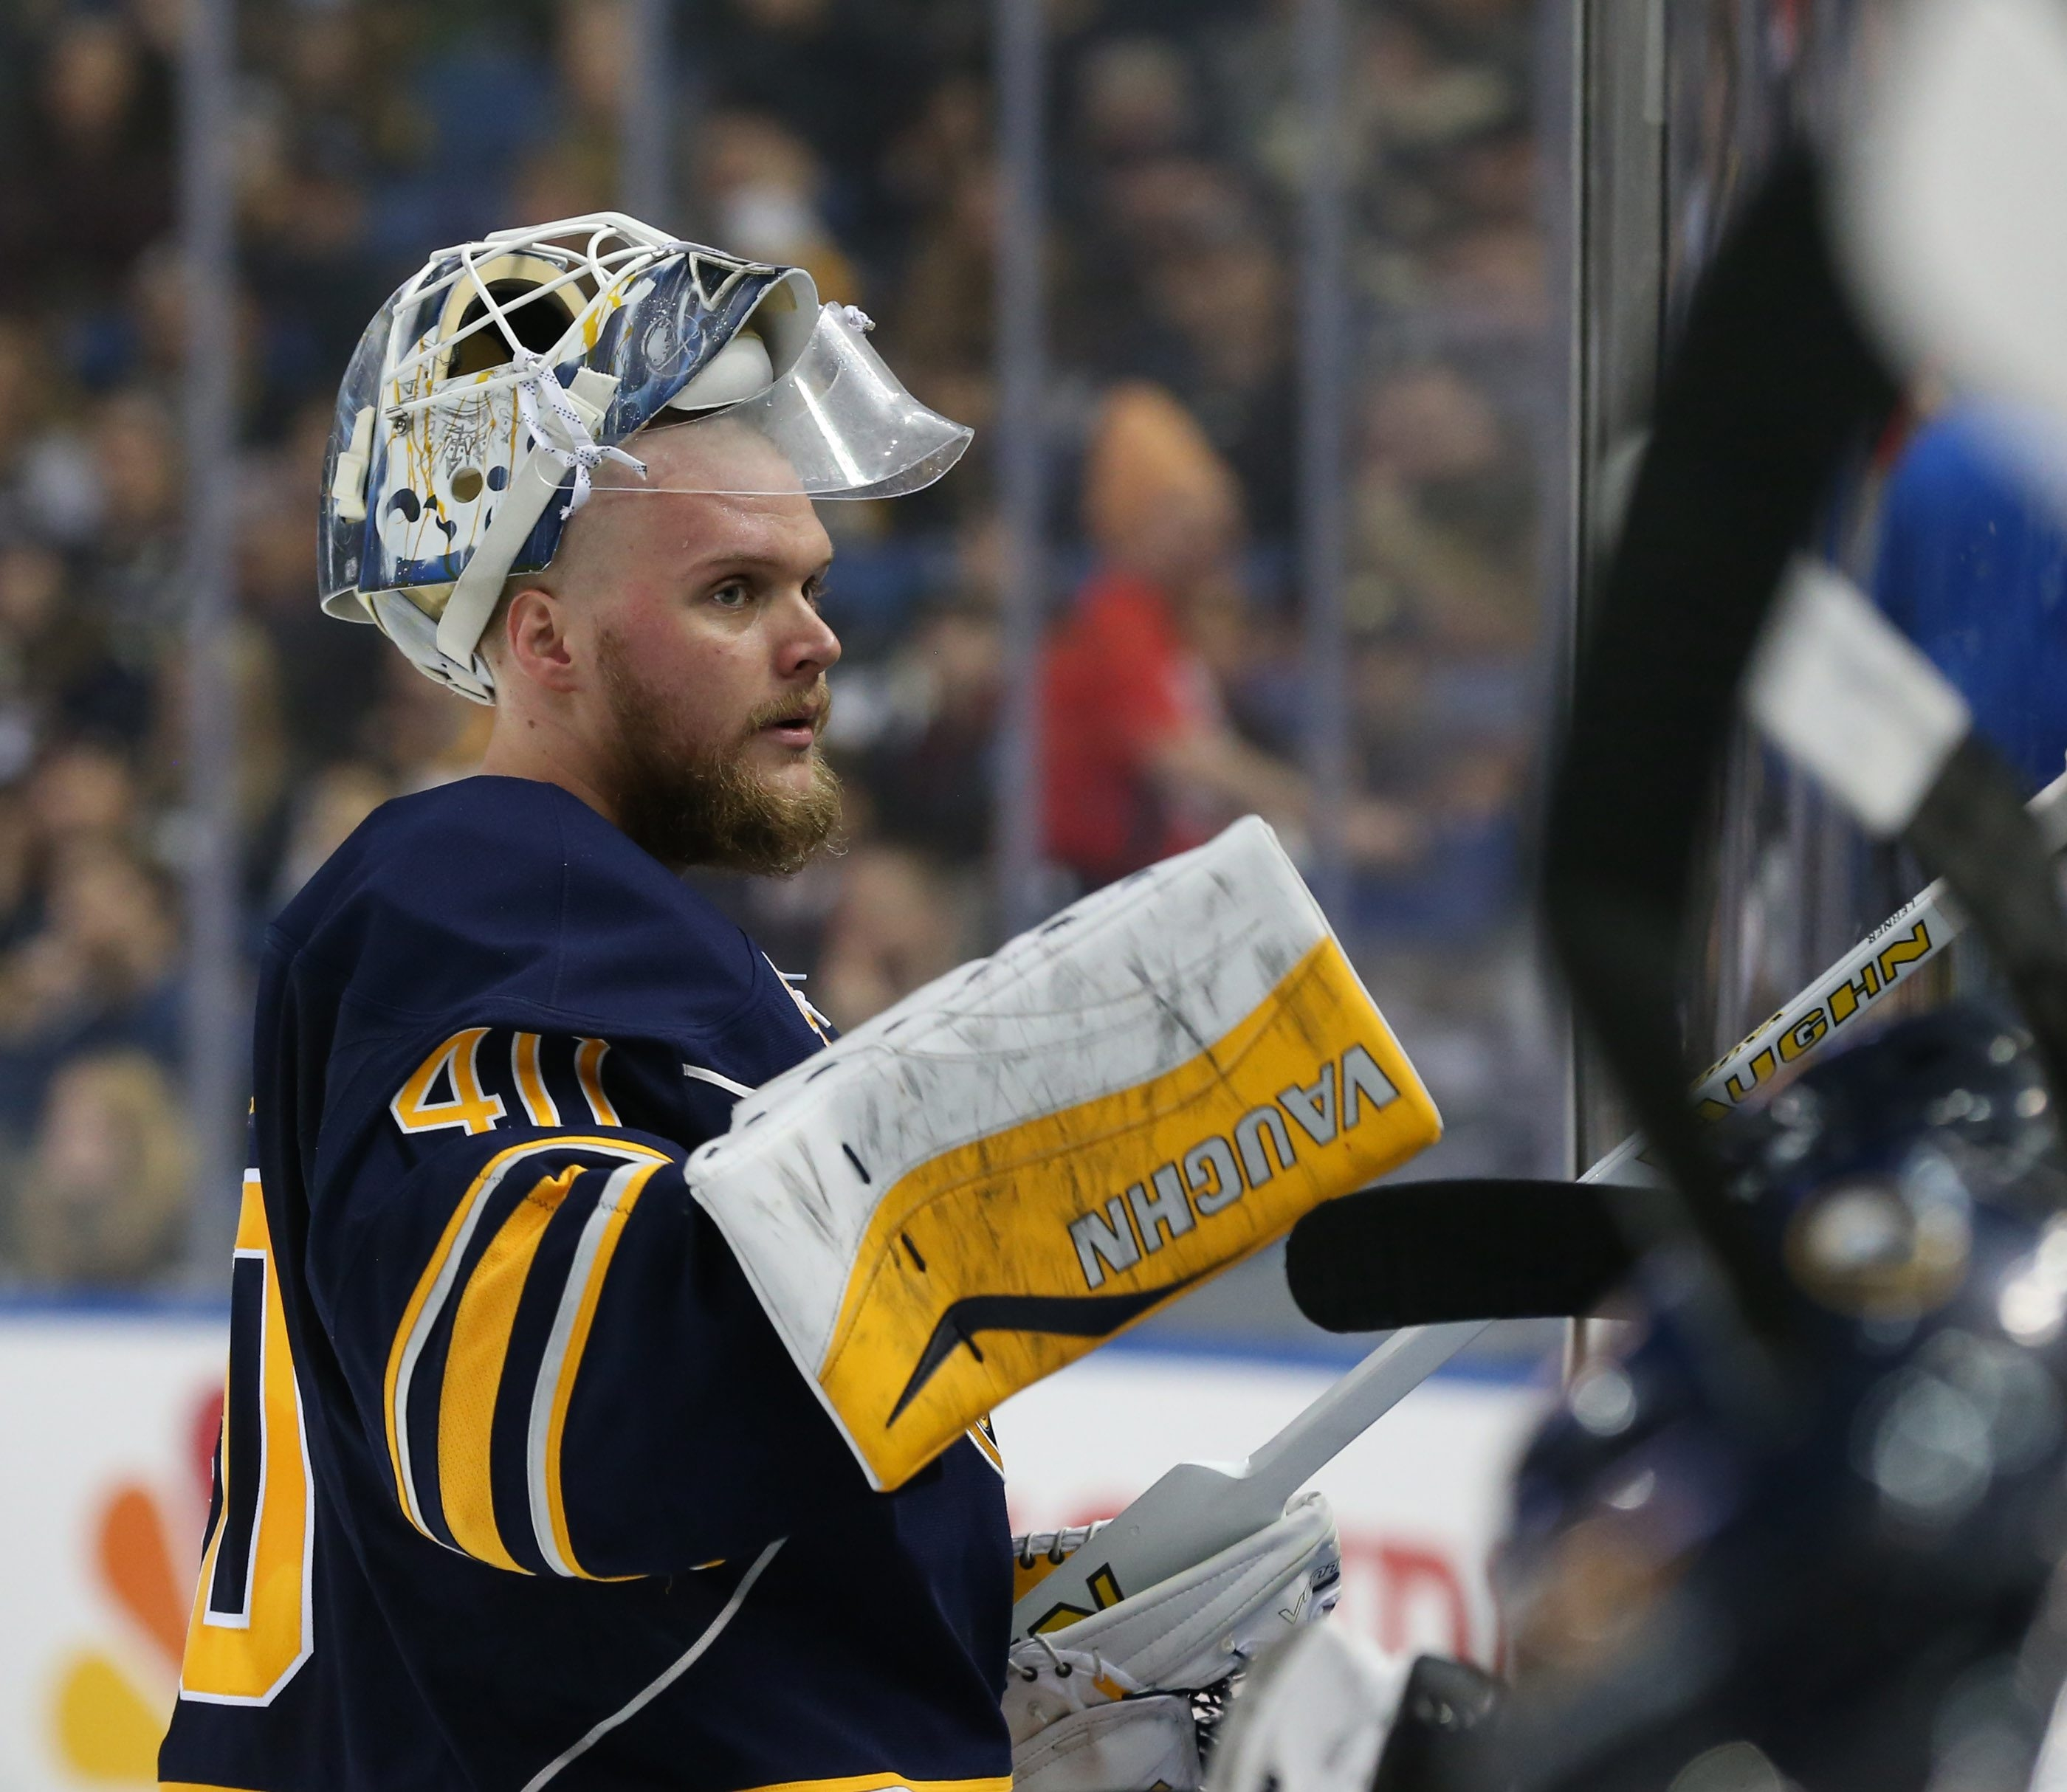 Buffalo Sabres goalie Robin Lehner (40) goes to the bench during a time-out in the first period at First Niagara Center in Buffalo on Feb. 21, 2016.